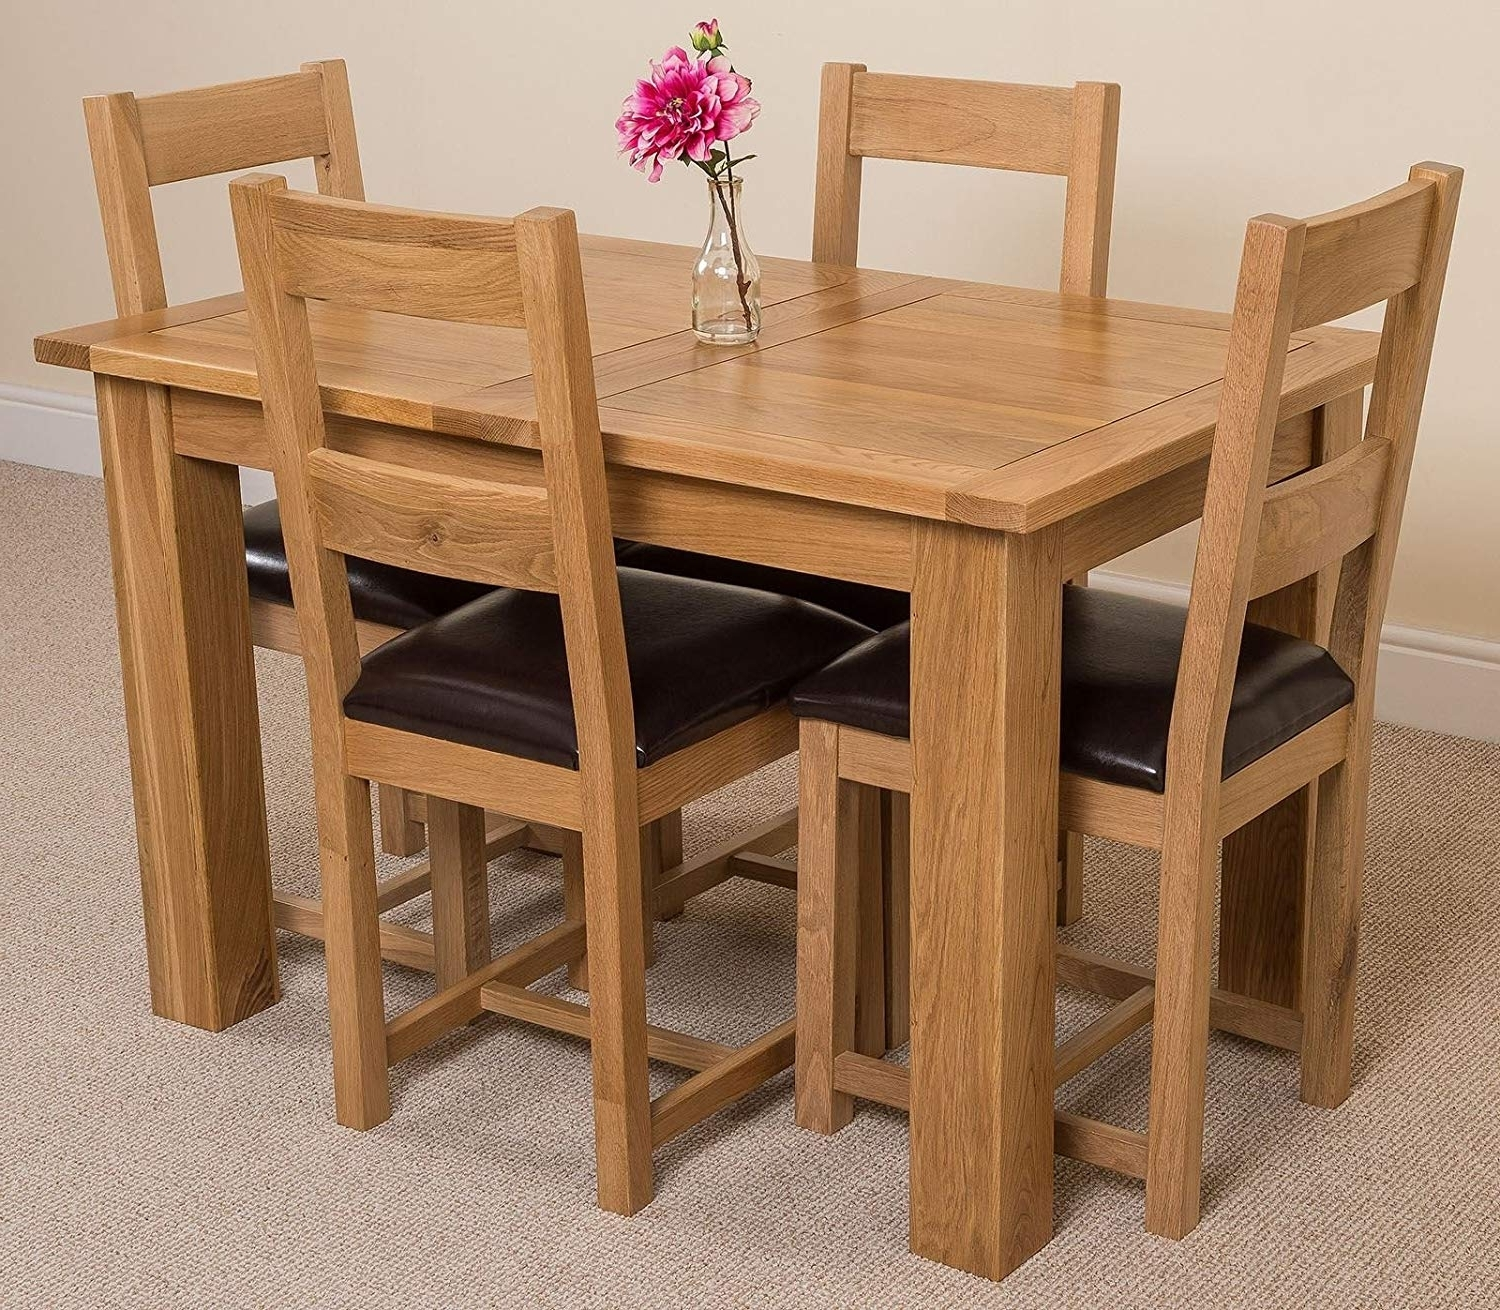 Trendy Small Extending Dining Tables And Chairs Regarding Hampton Solid Oak (120 160 Cm) Extending Dining Table & 4 Lincoln (View 25 of 25)